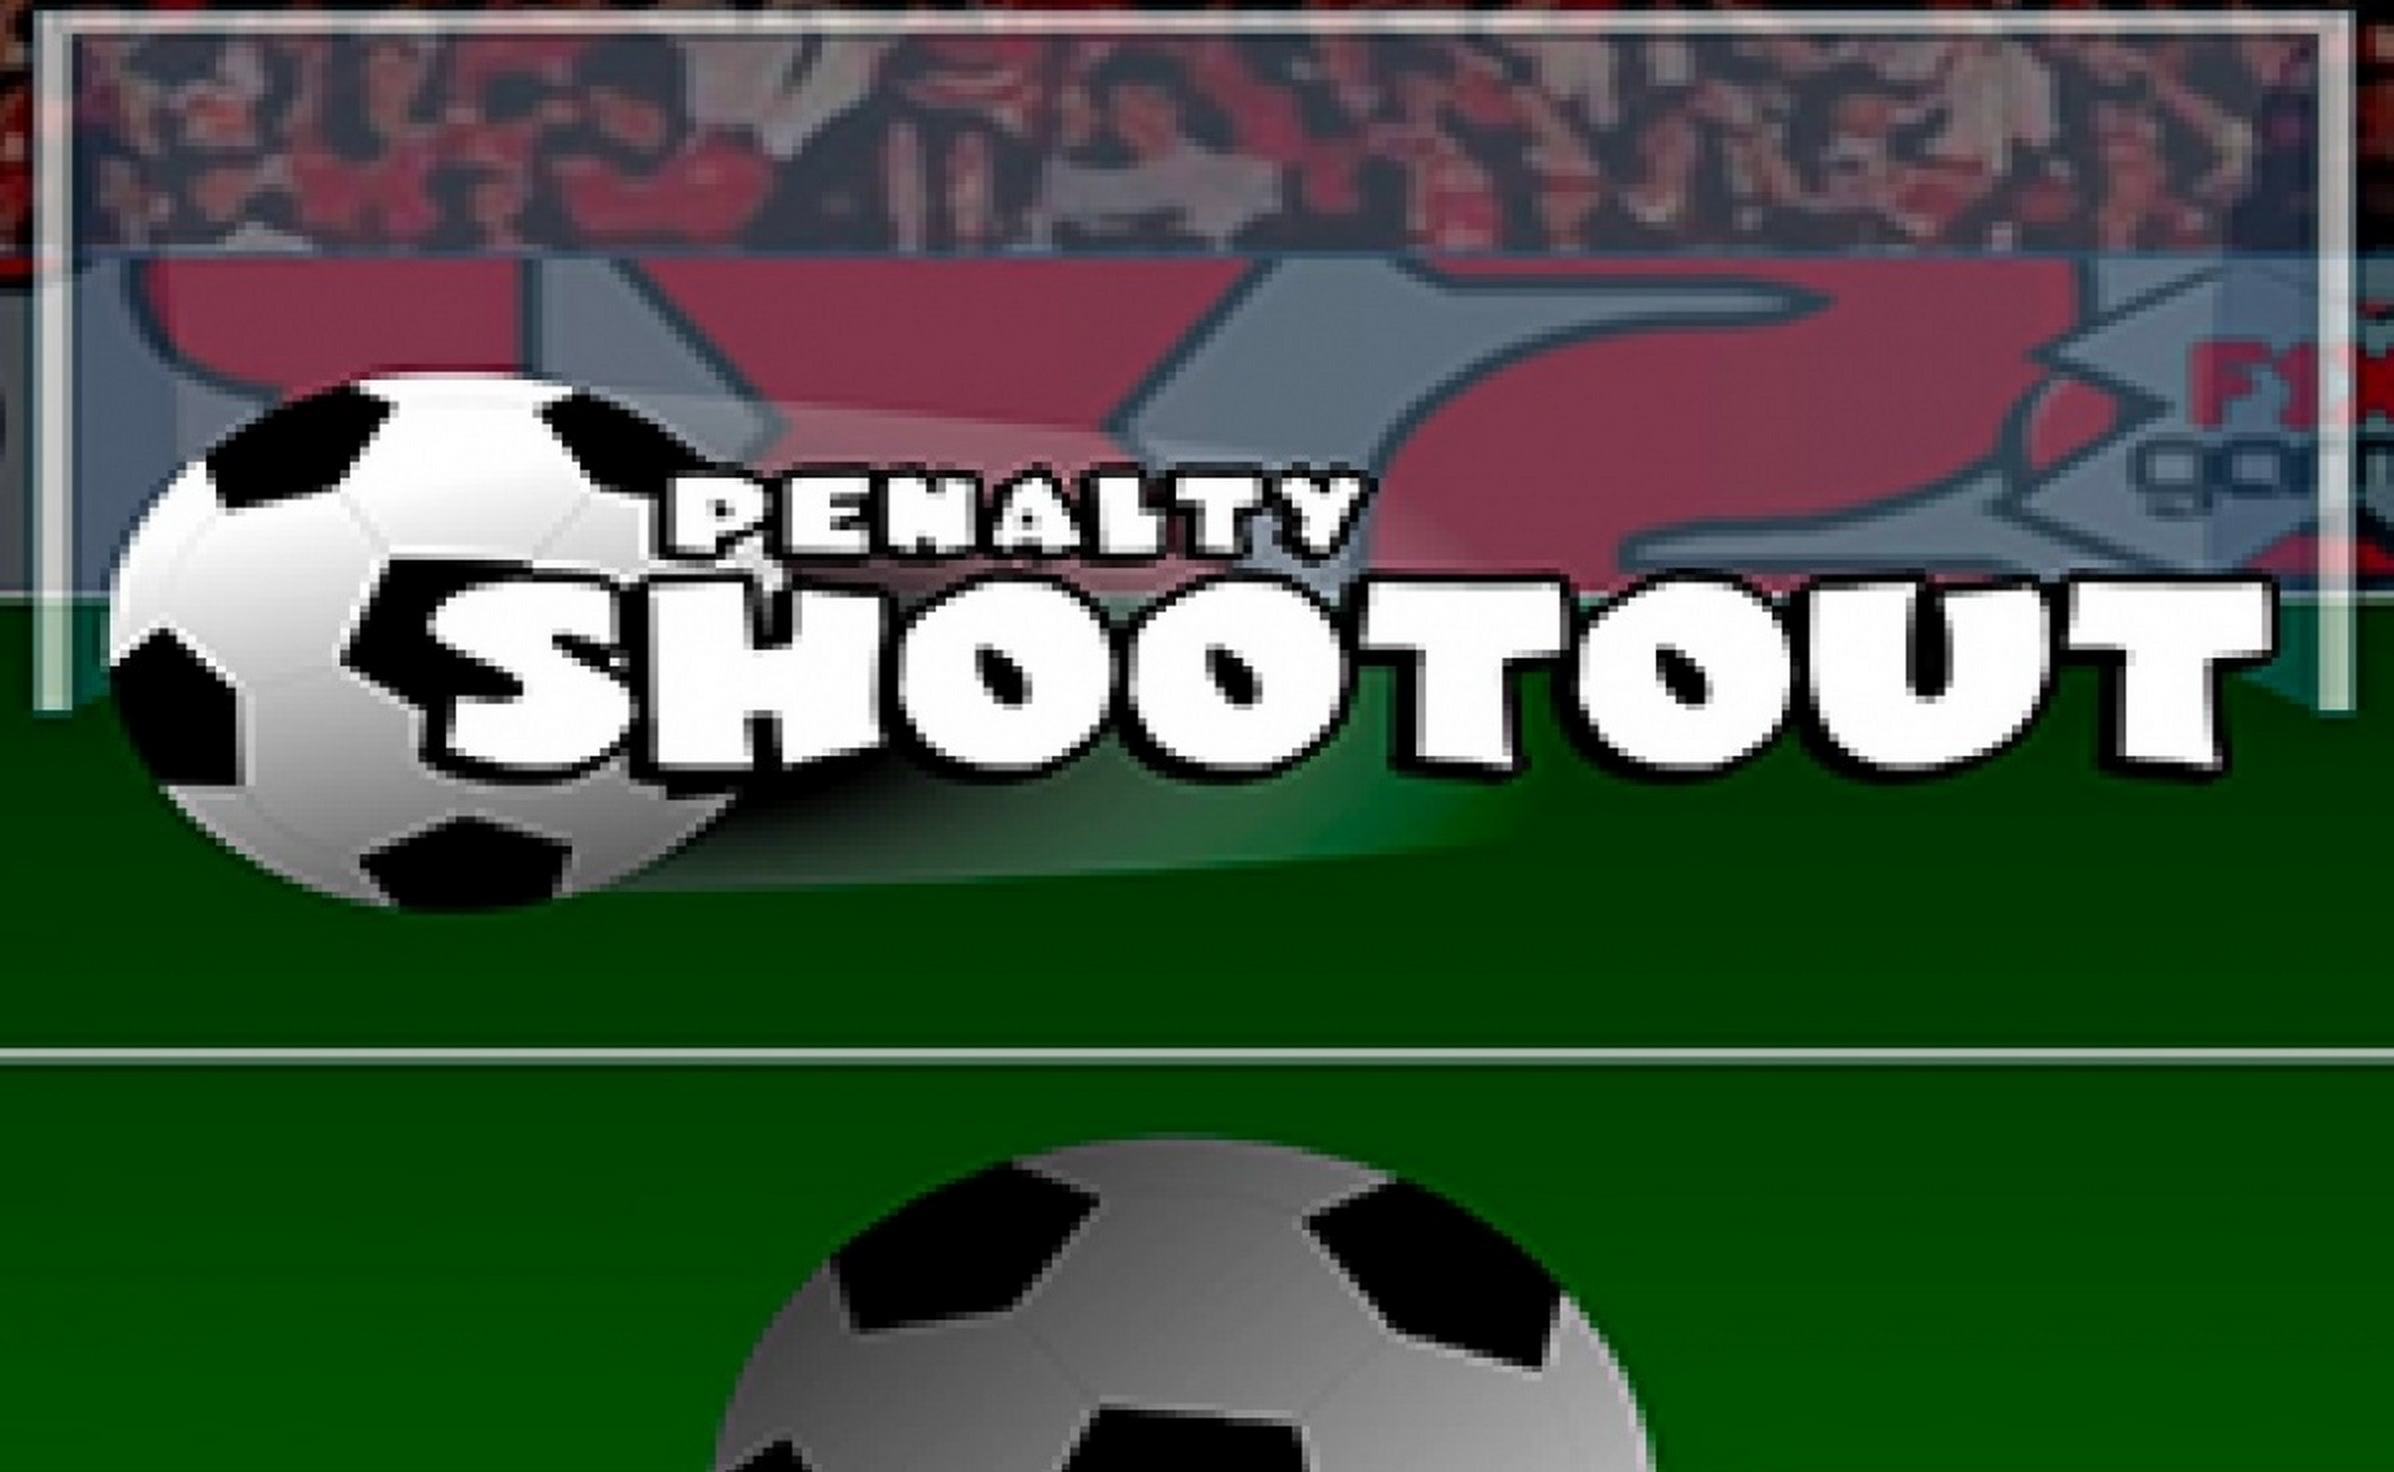 The Penalty Shootout (1x2gaming) Online Slot Demo Game by 1x2 Gaming